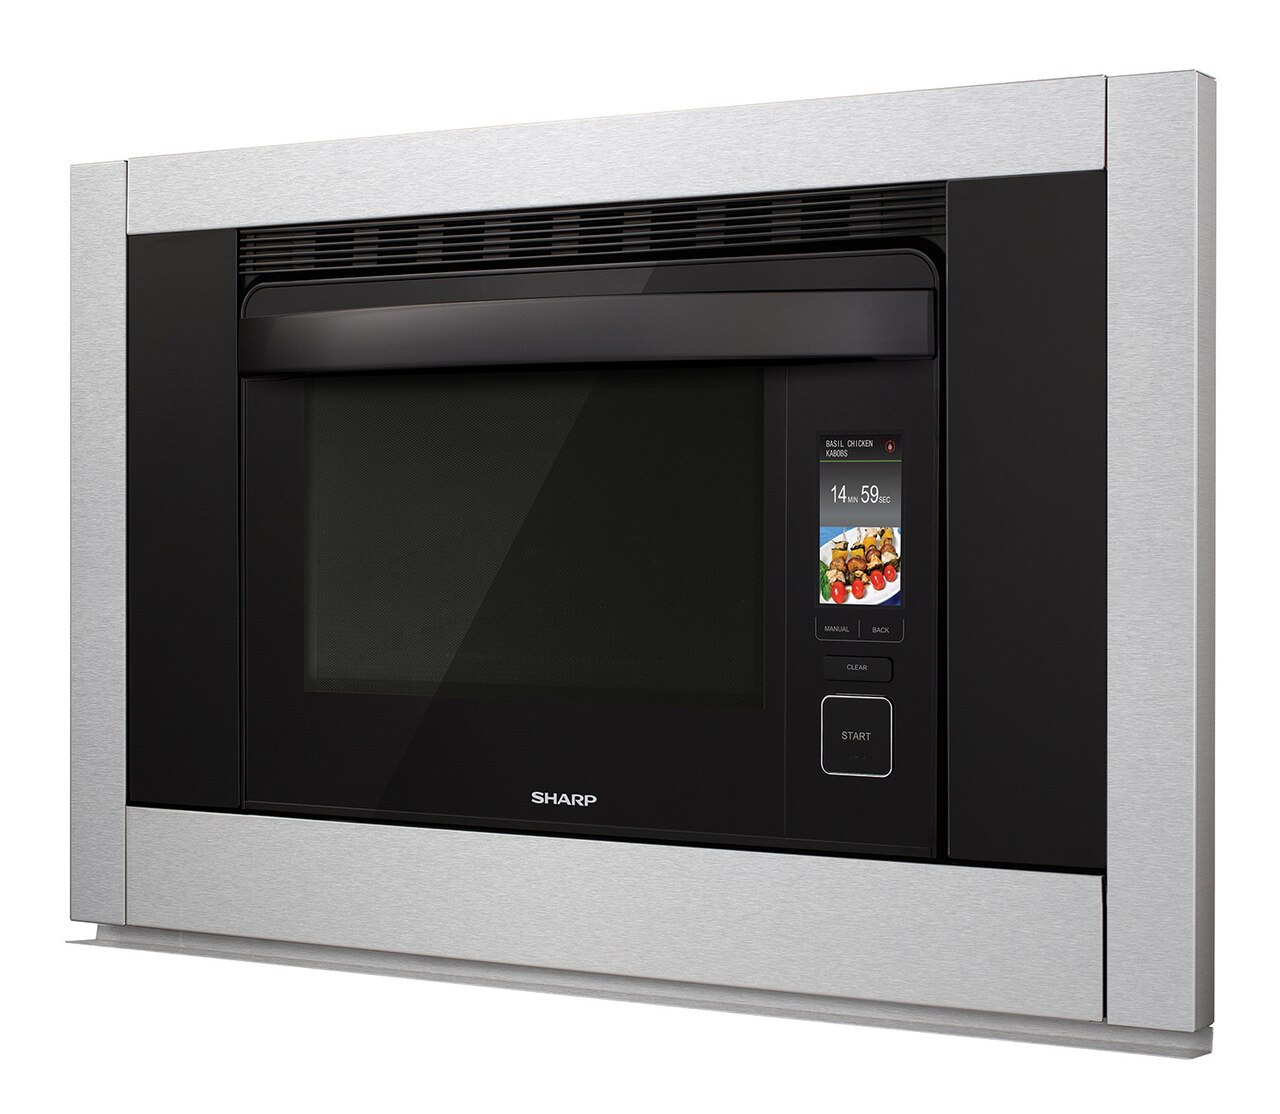 1.1 cu. ft. Supersteam+ Superheated Steam and Convection Built-in Wall Oven (SSC3088AS) – left angle view